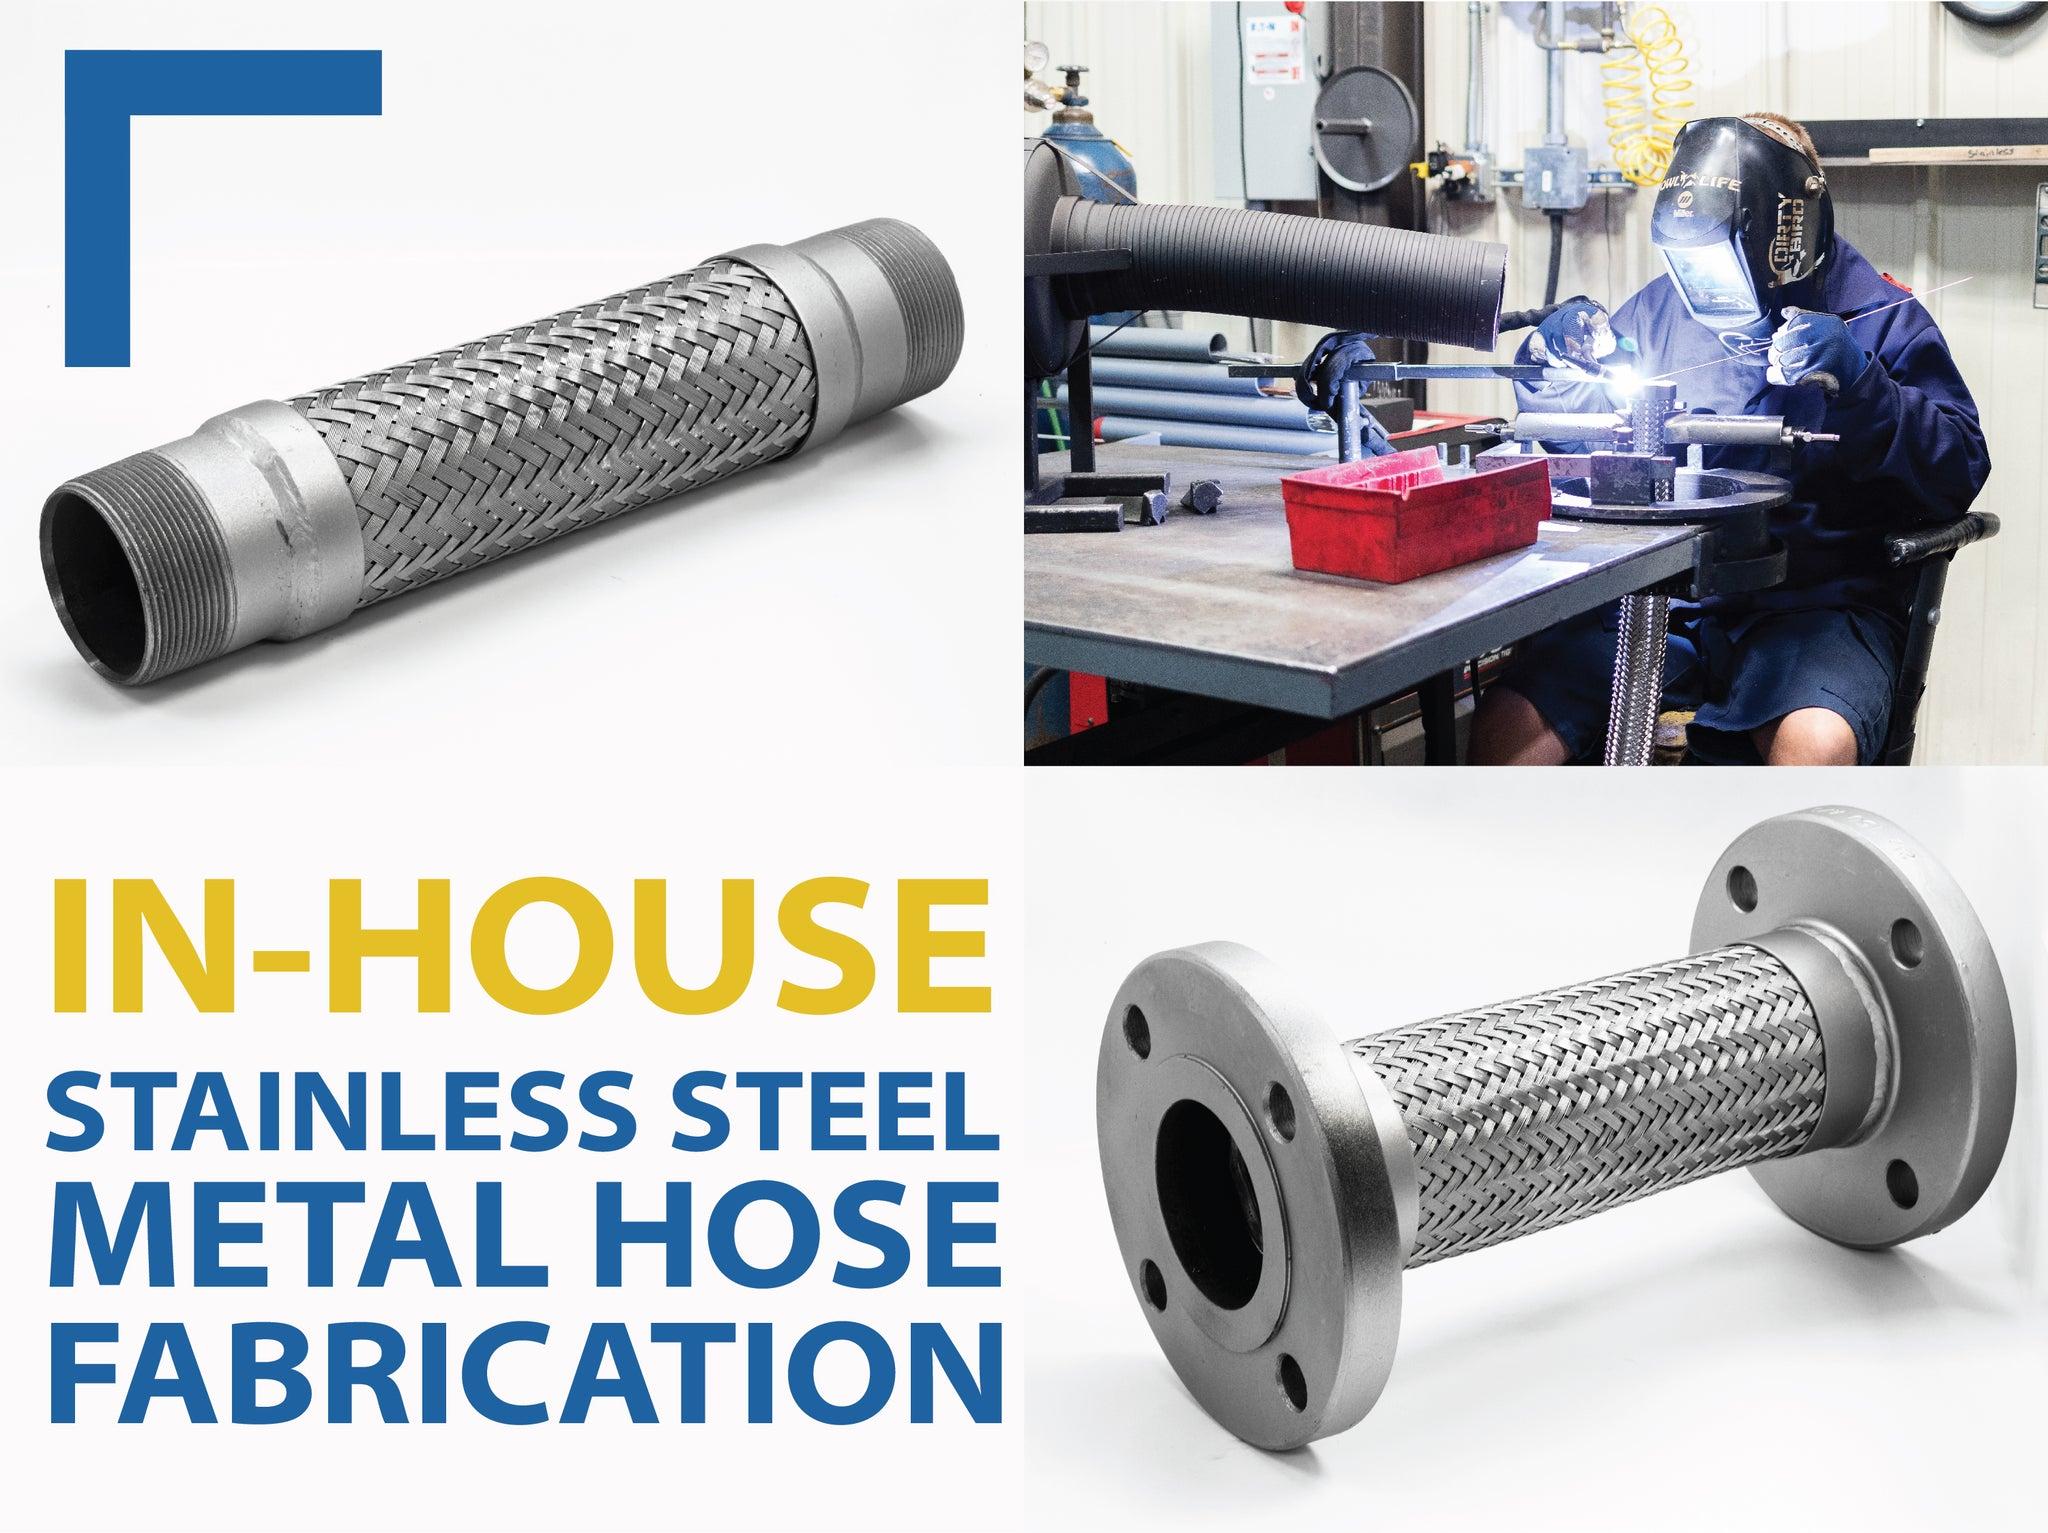 Stainless Steel Metal Hose Fabrication